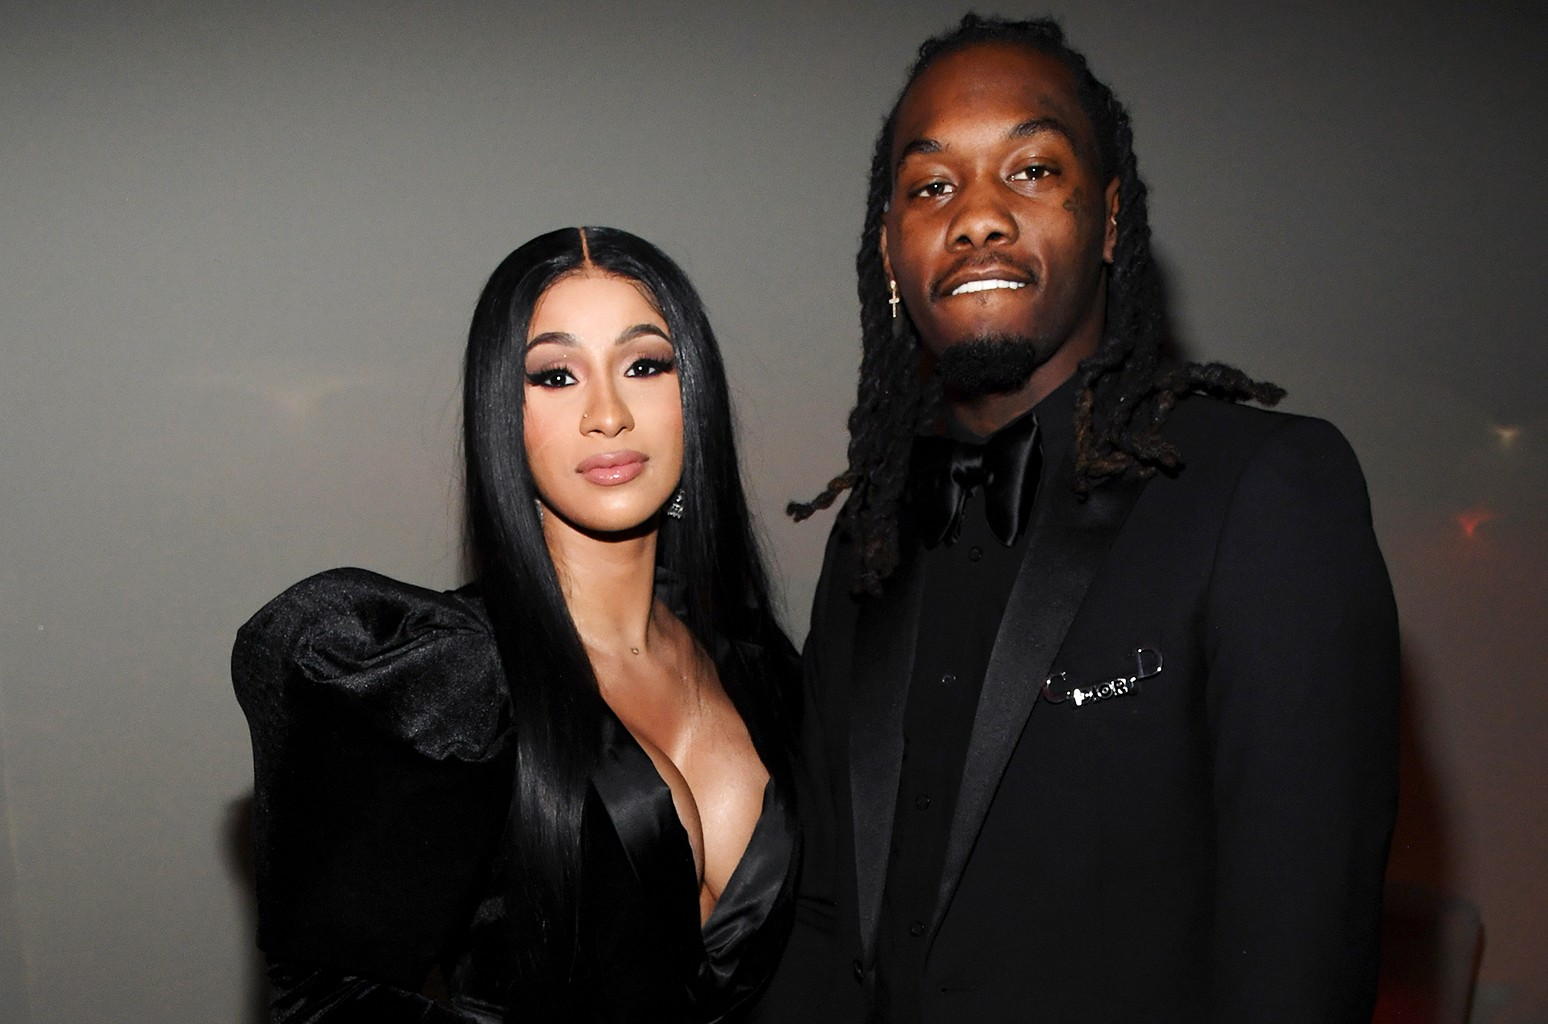 cardi-b-and-offset-kiss-at-her-birthday-party-less-than-a-month-after-filing-for-divorce